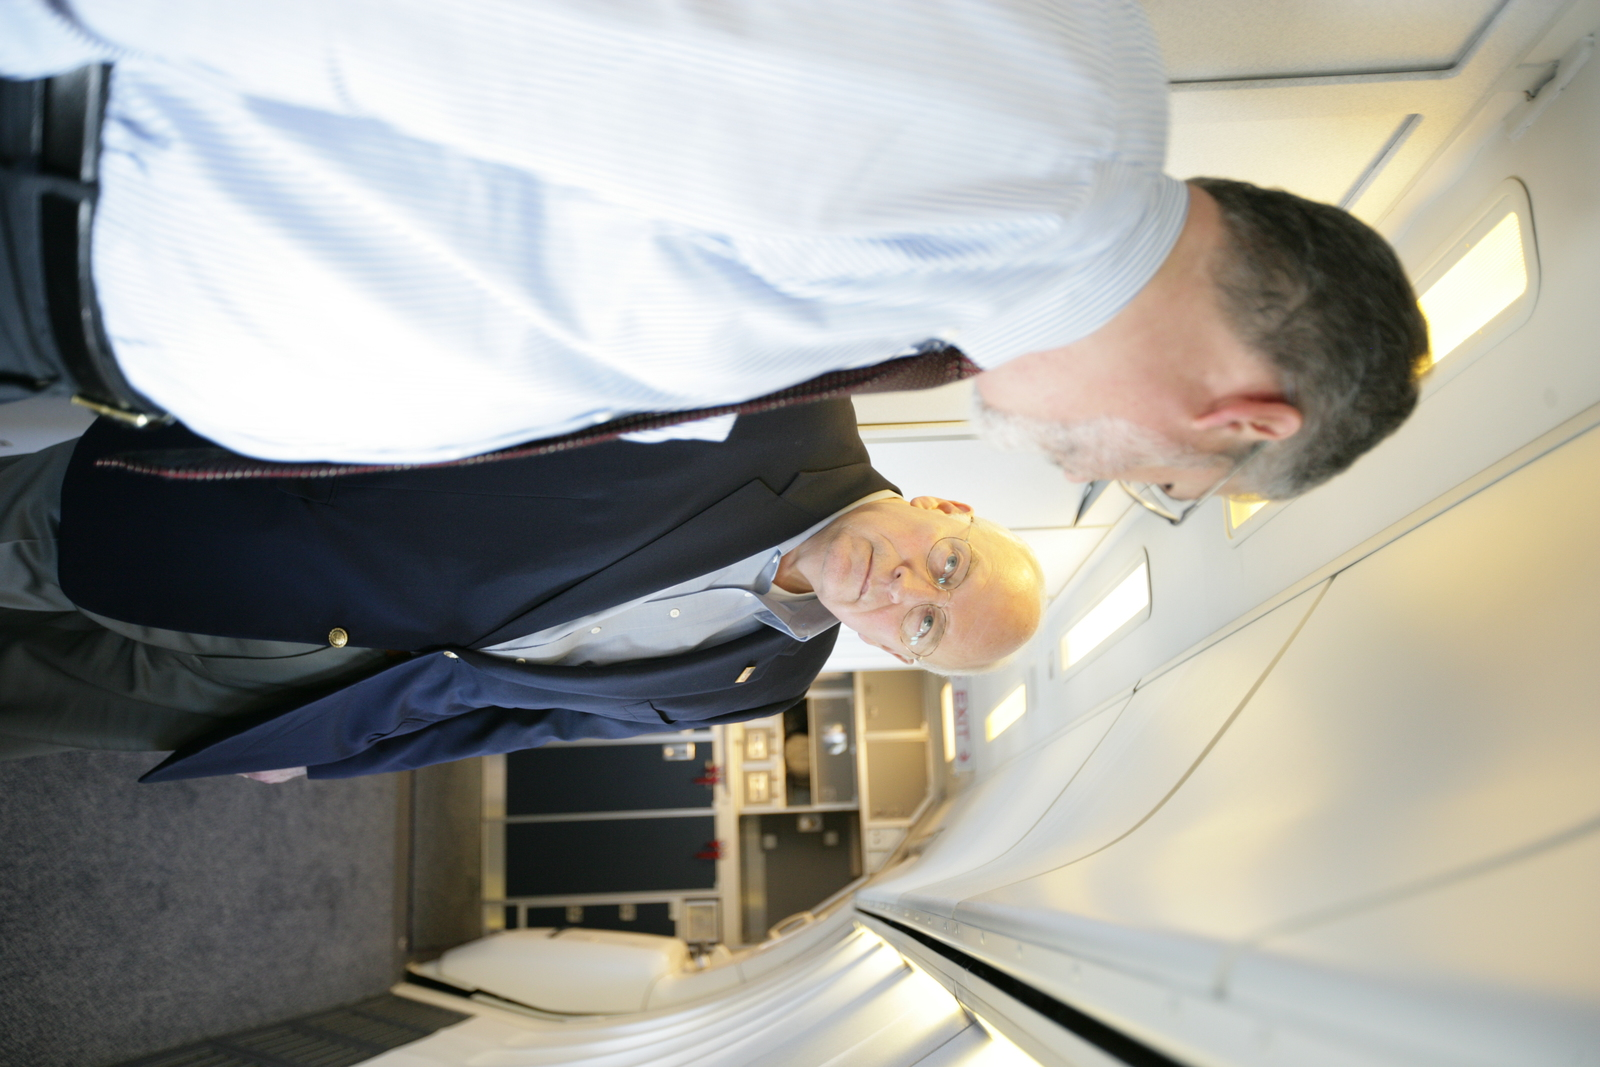 Vice President Cheney Talks with David Addington Aboard Air Force Two En Route to Jackson, Wyoming